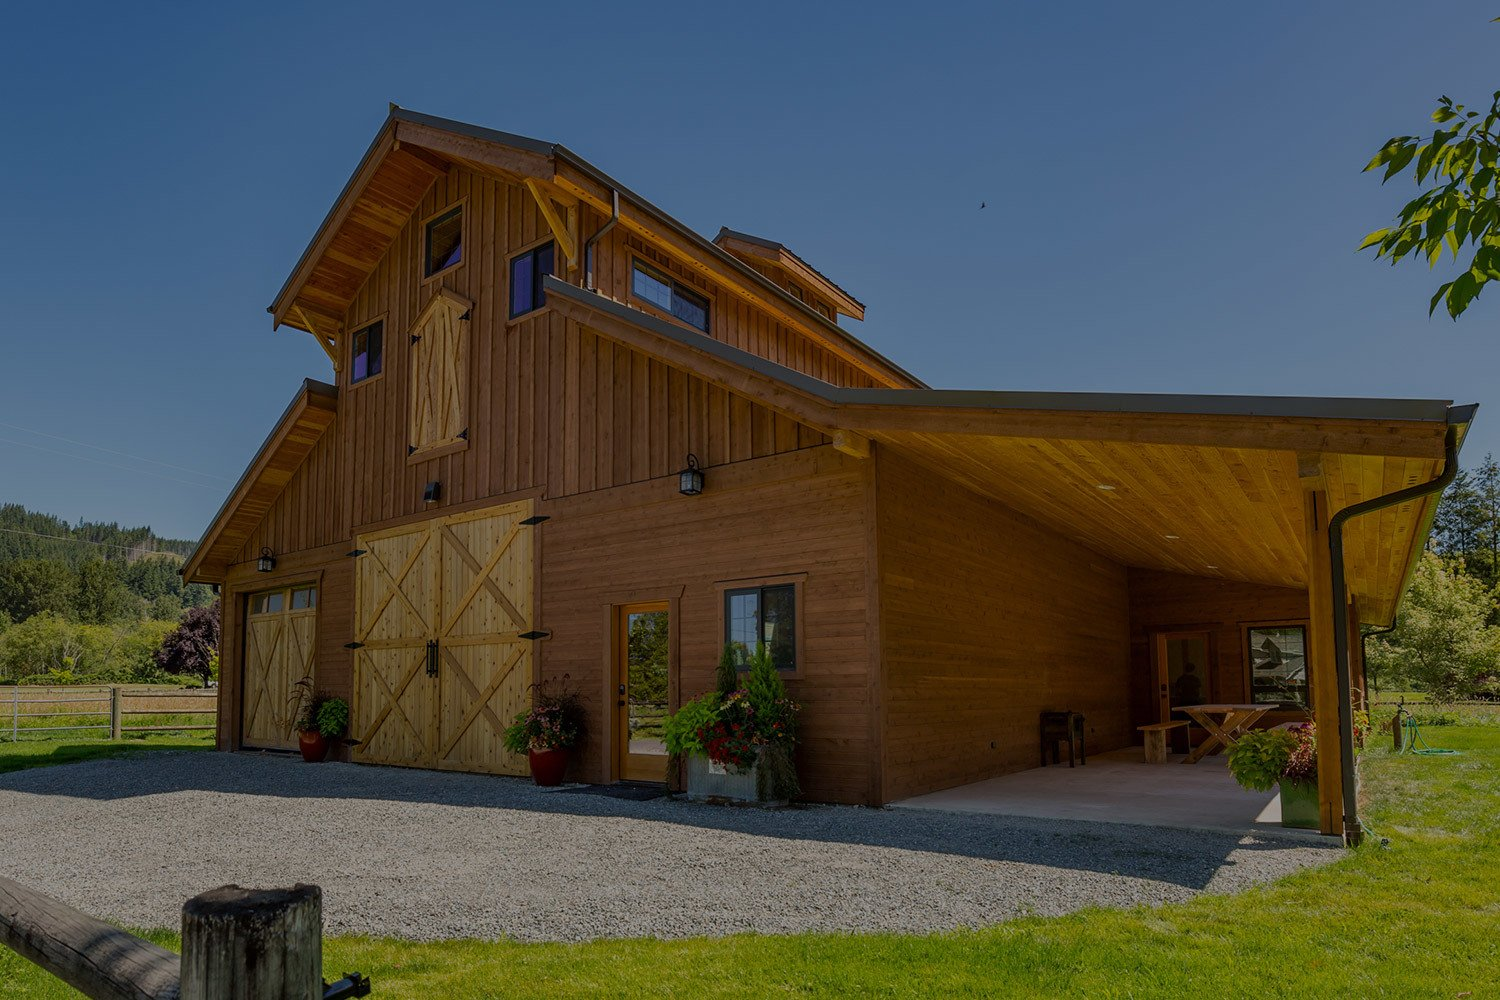 This all-wood monitor style apartment barn is a beautiful addition to the property.